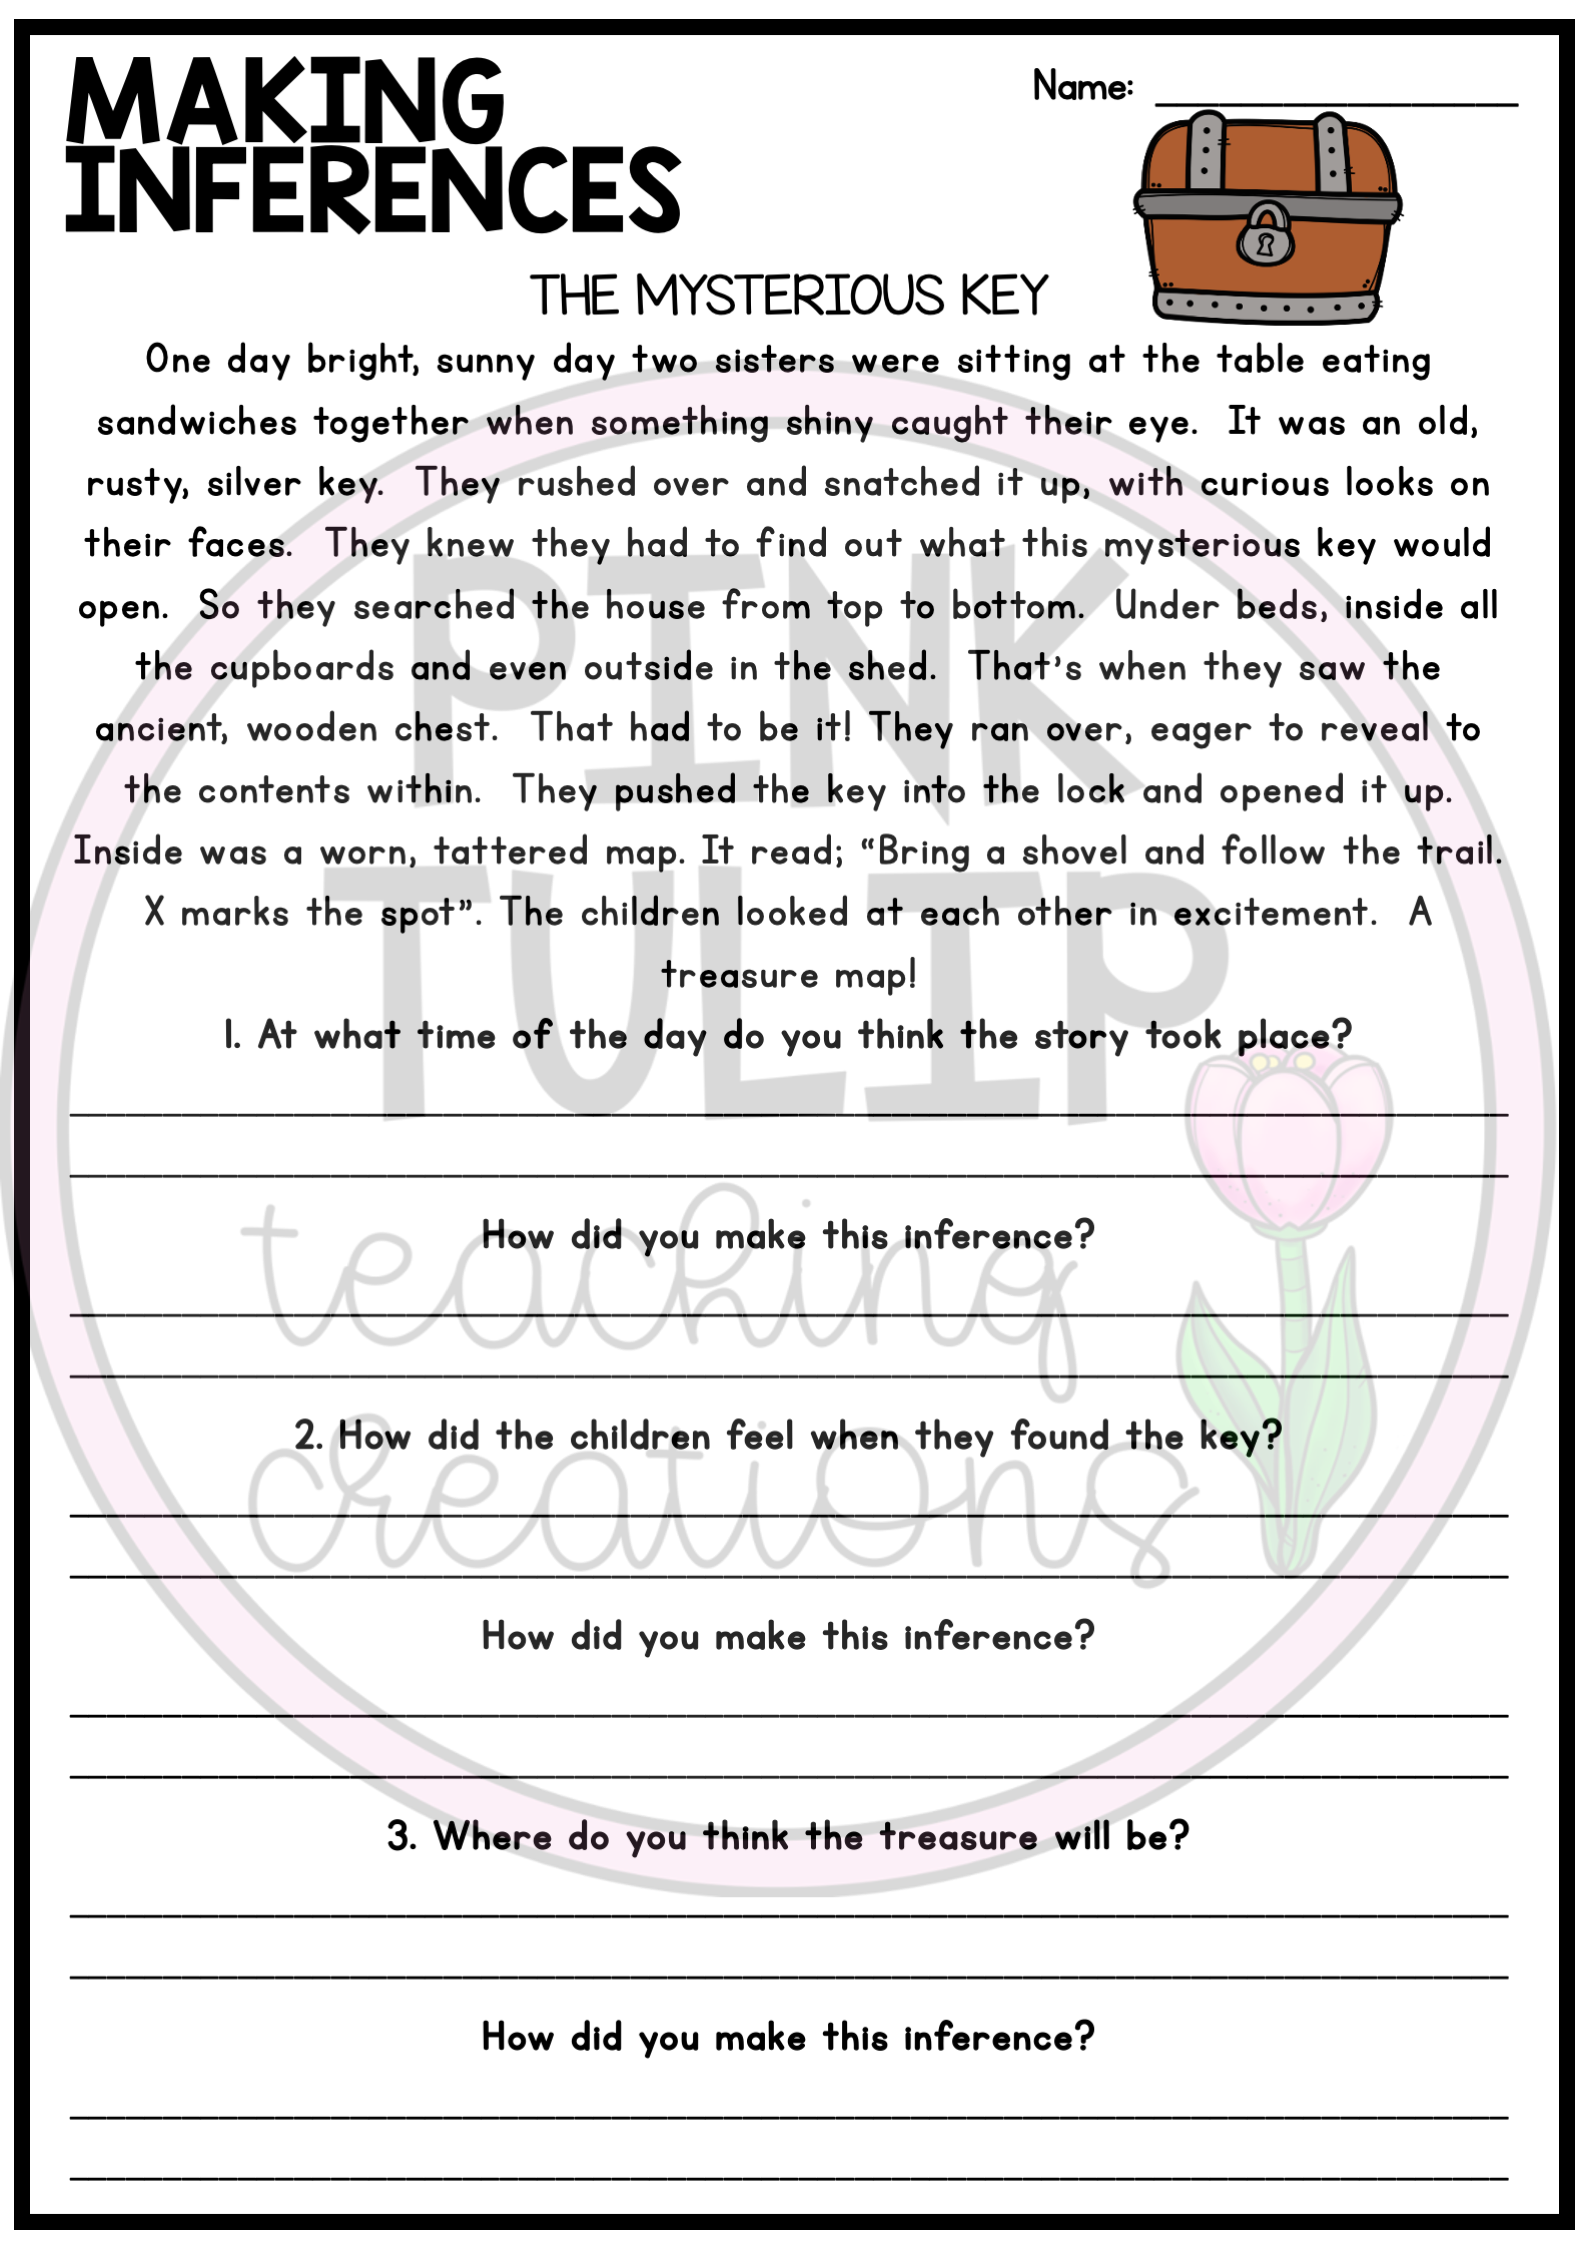 small resolution of Making Inferences Worksheets 7th Grade   Printable Worksheets and  Activities for Teachers